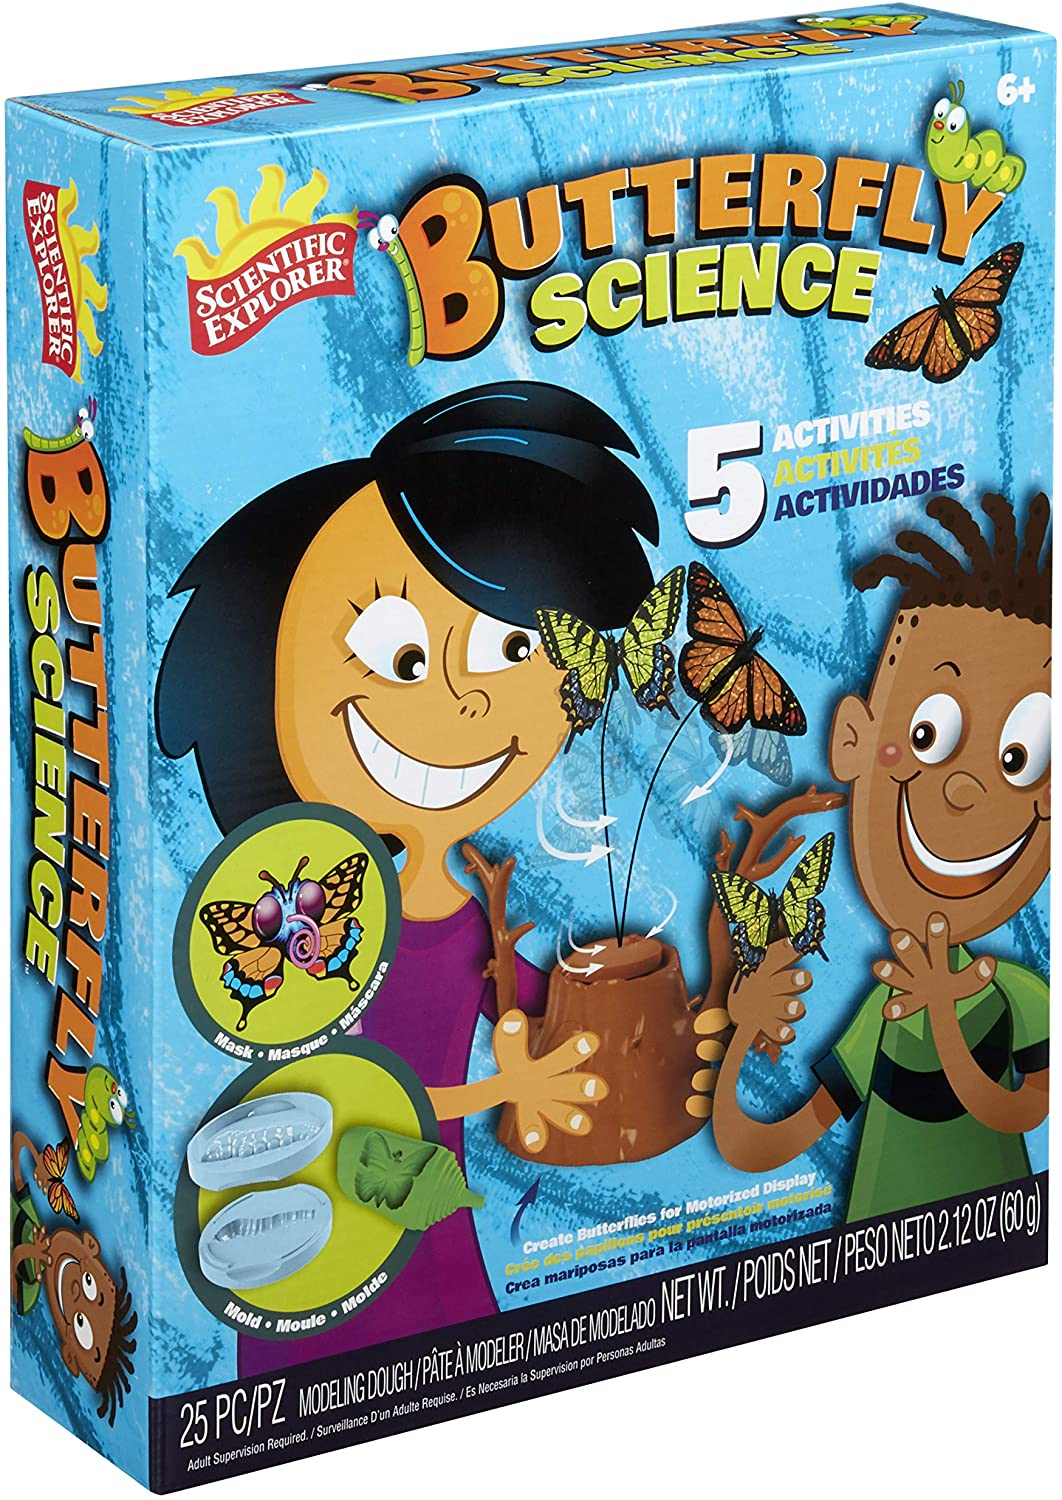 Scientific Explorer Butterfly Science Kids Science Experiment Kit